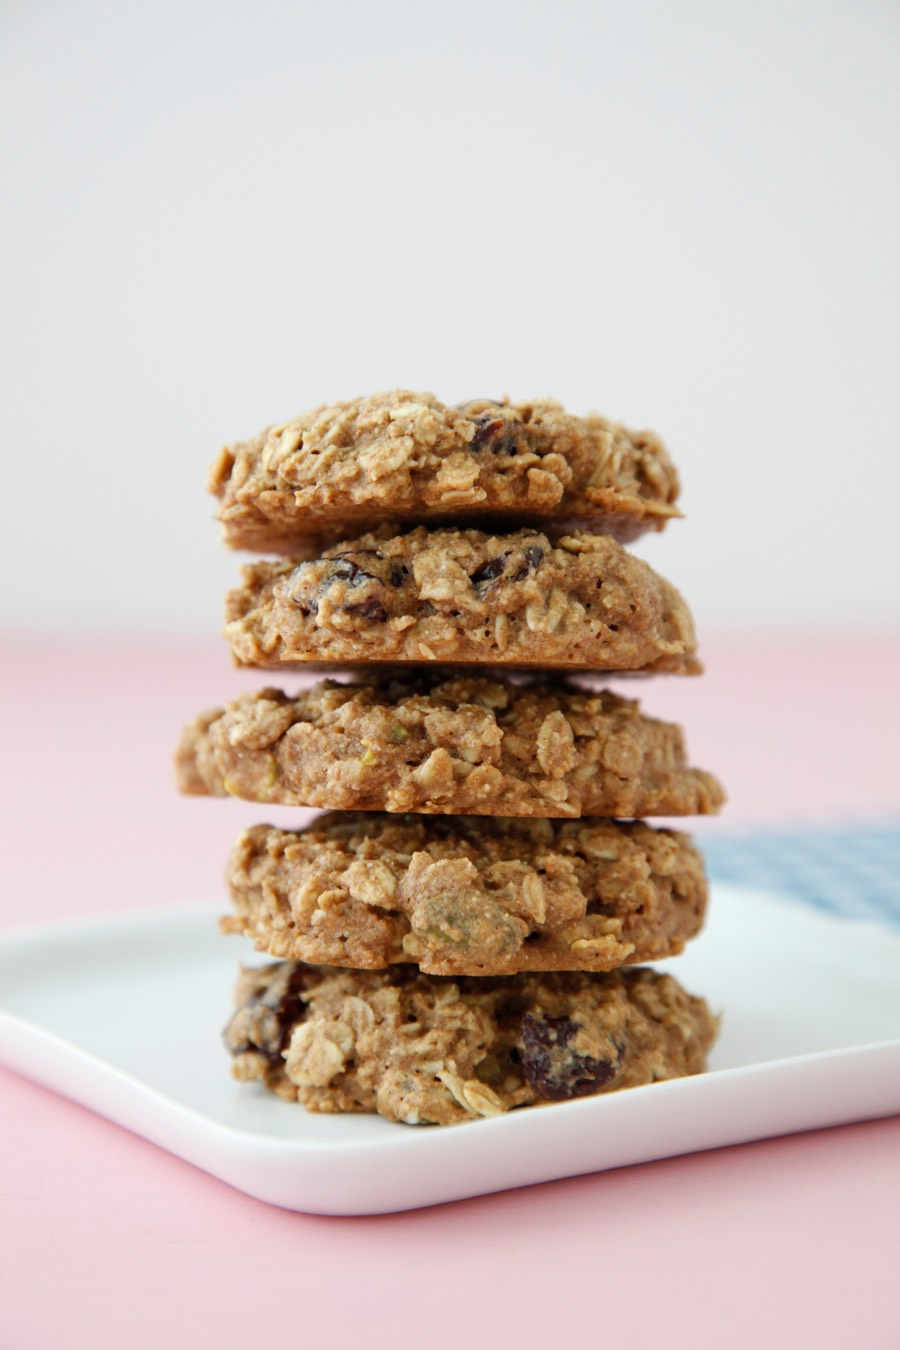 Breakfast Cookies from Weelicious